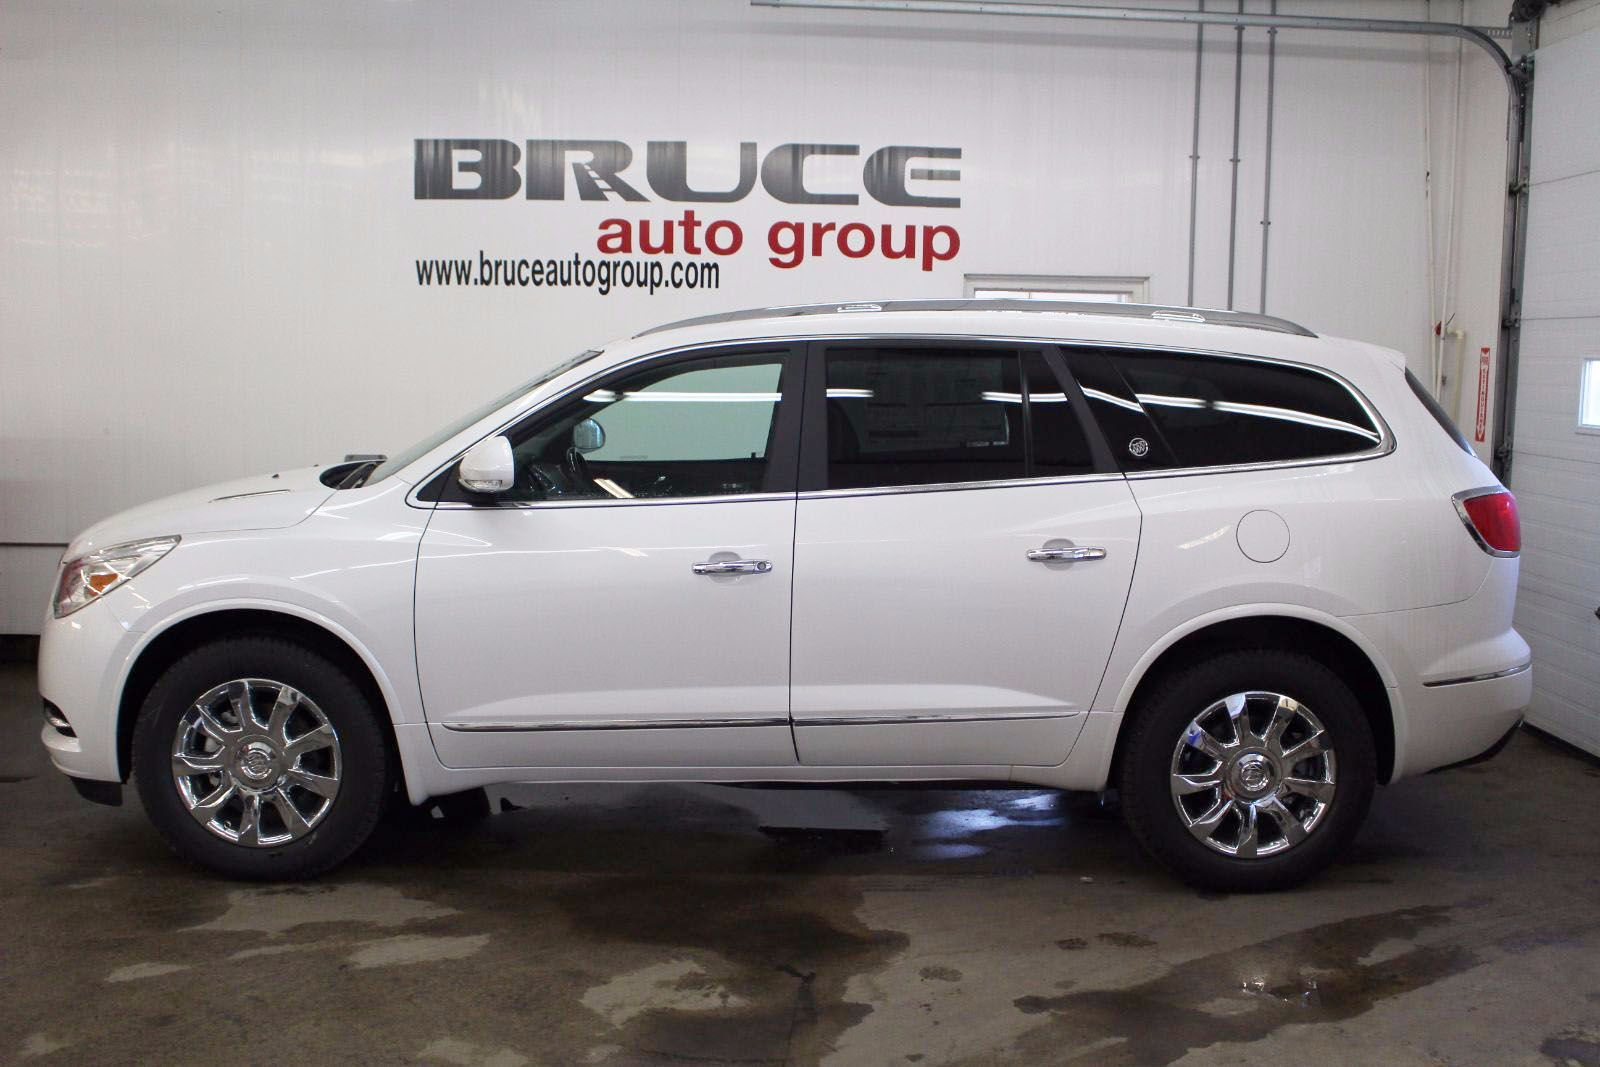 New 2017 Buick Enclave 3 6l 6 Cyl Automatic Awd In Middleton G17088